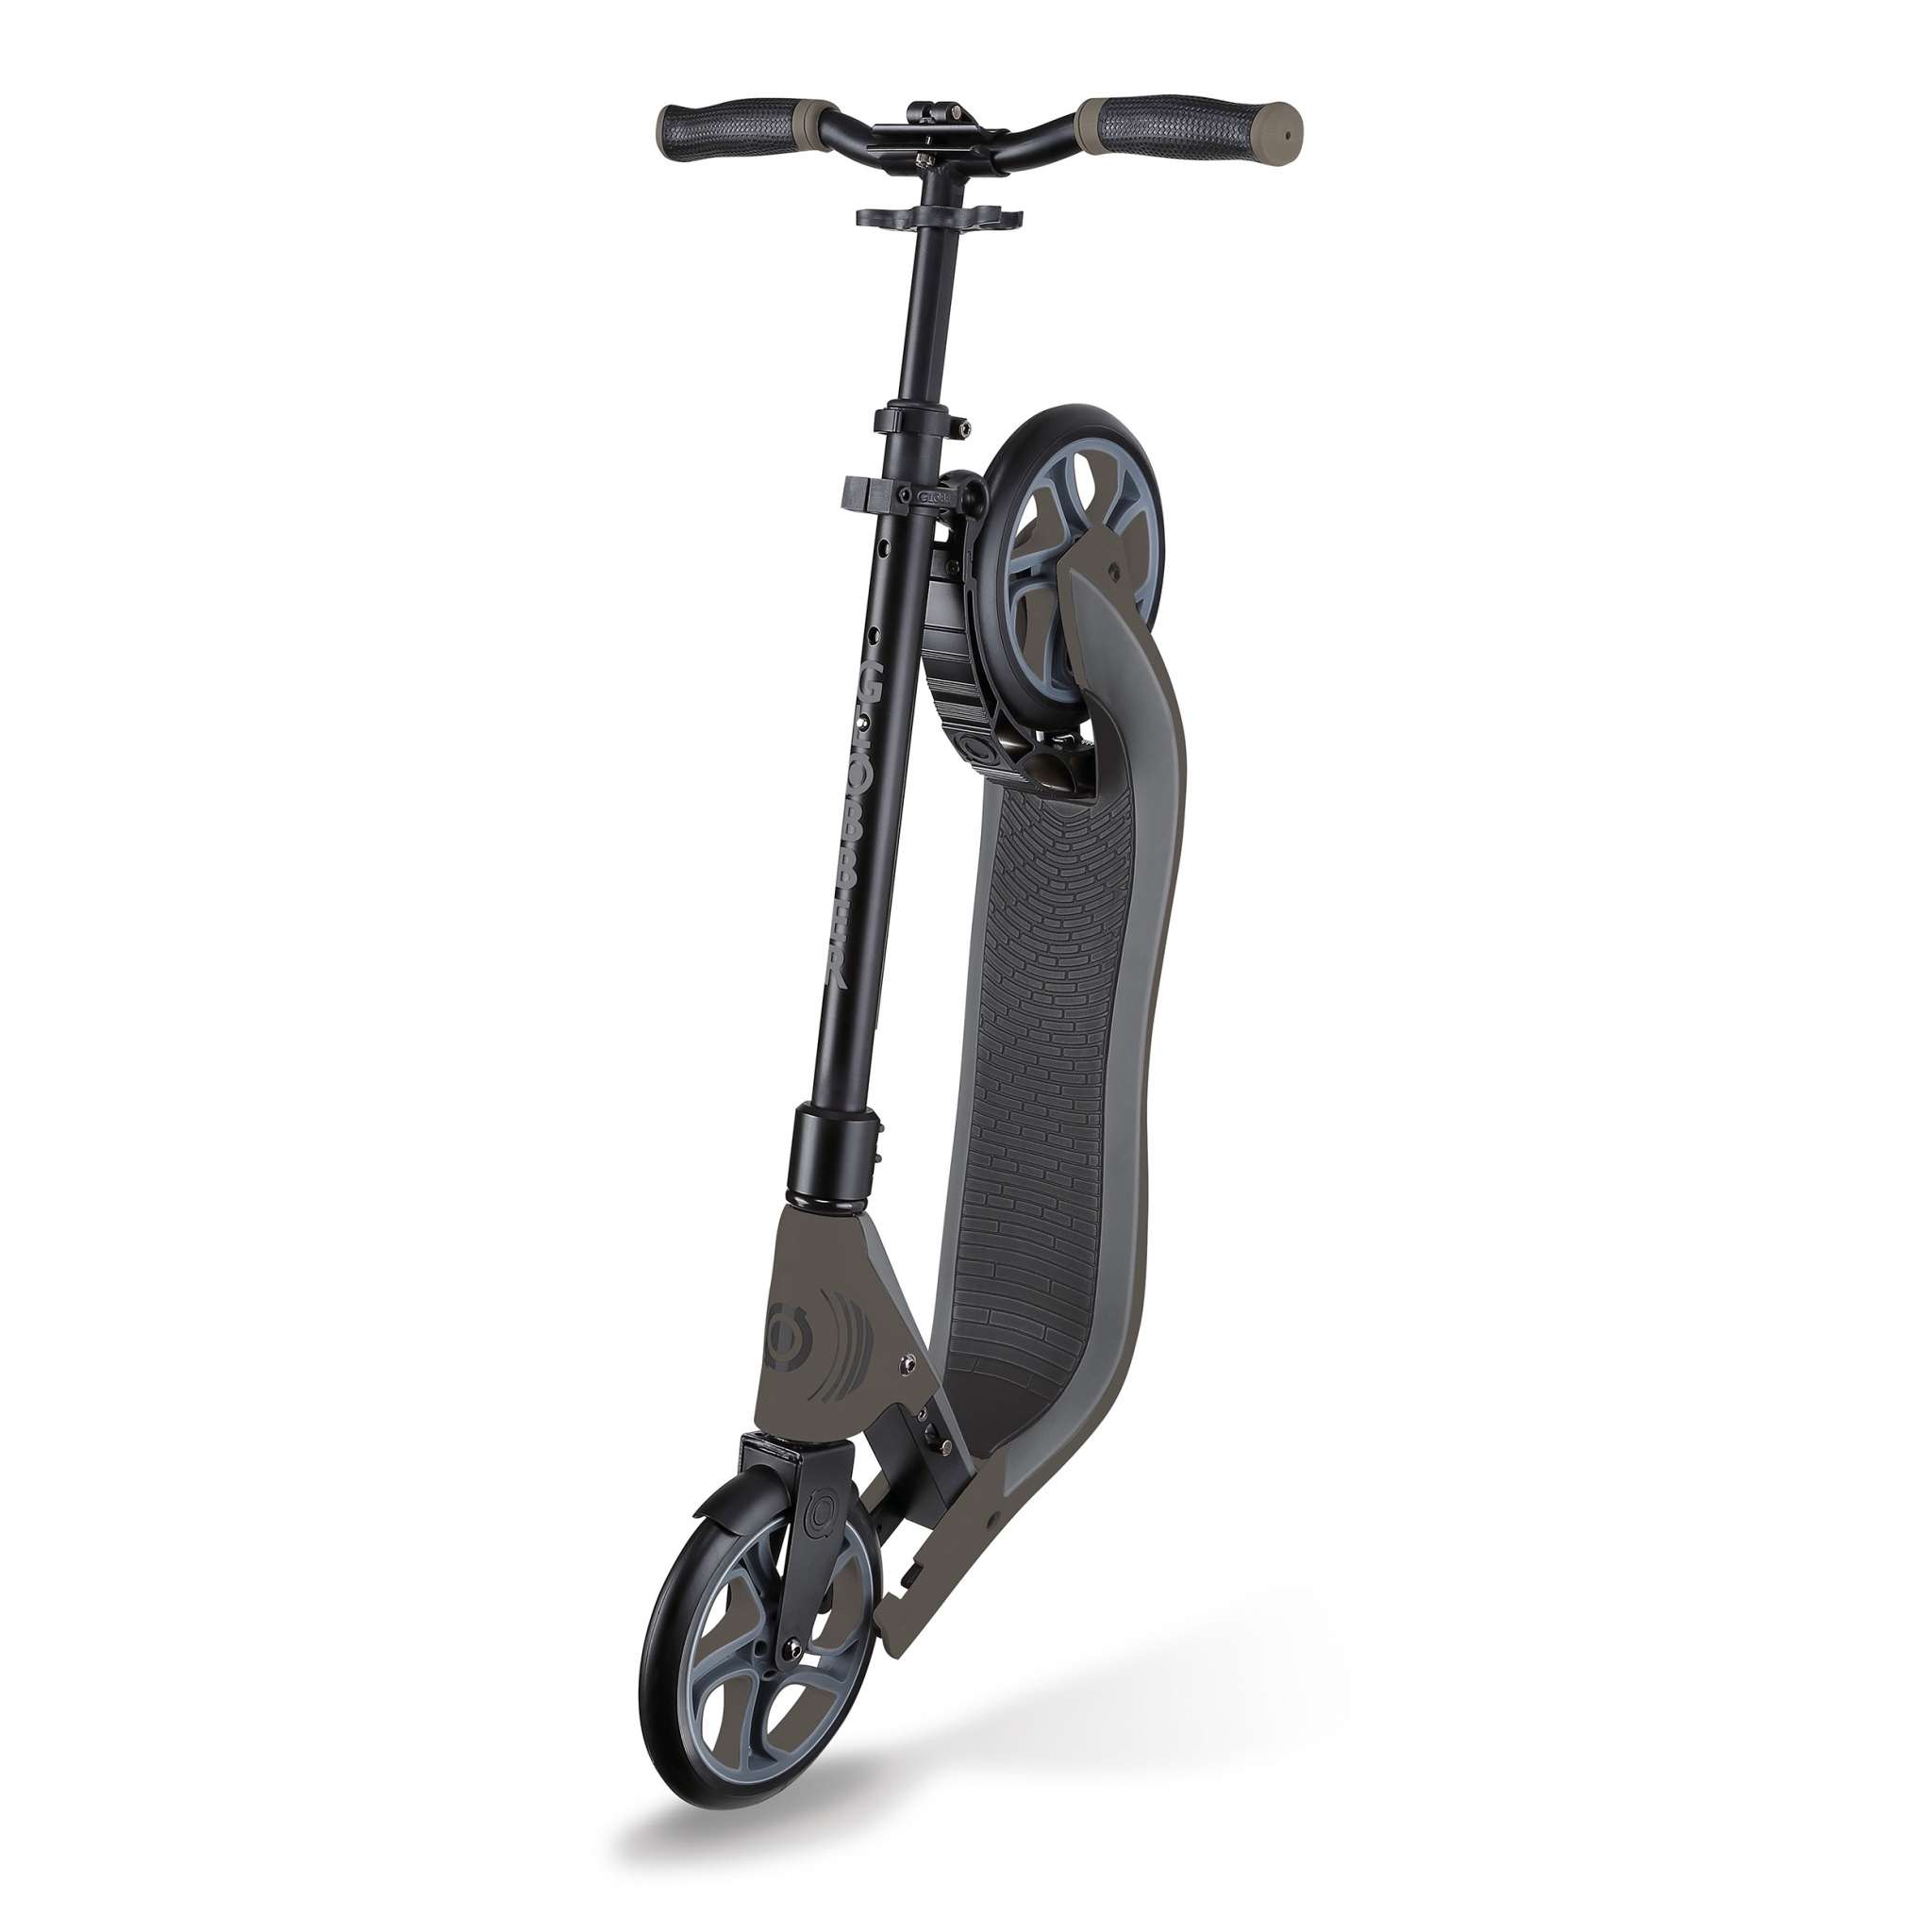 2-wheel foldable scooter for adults - Globber ONE NL 205 1